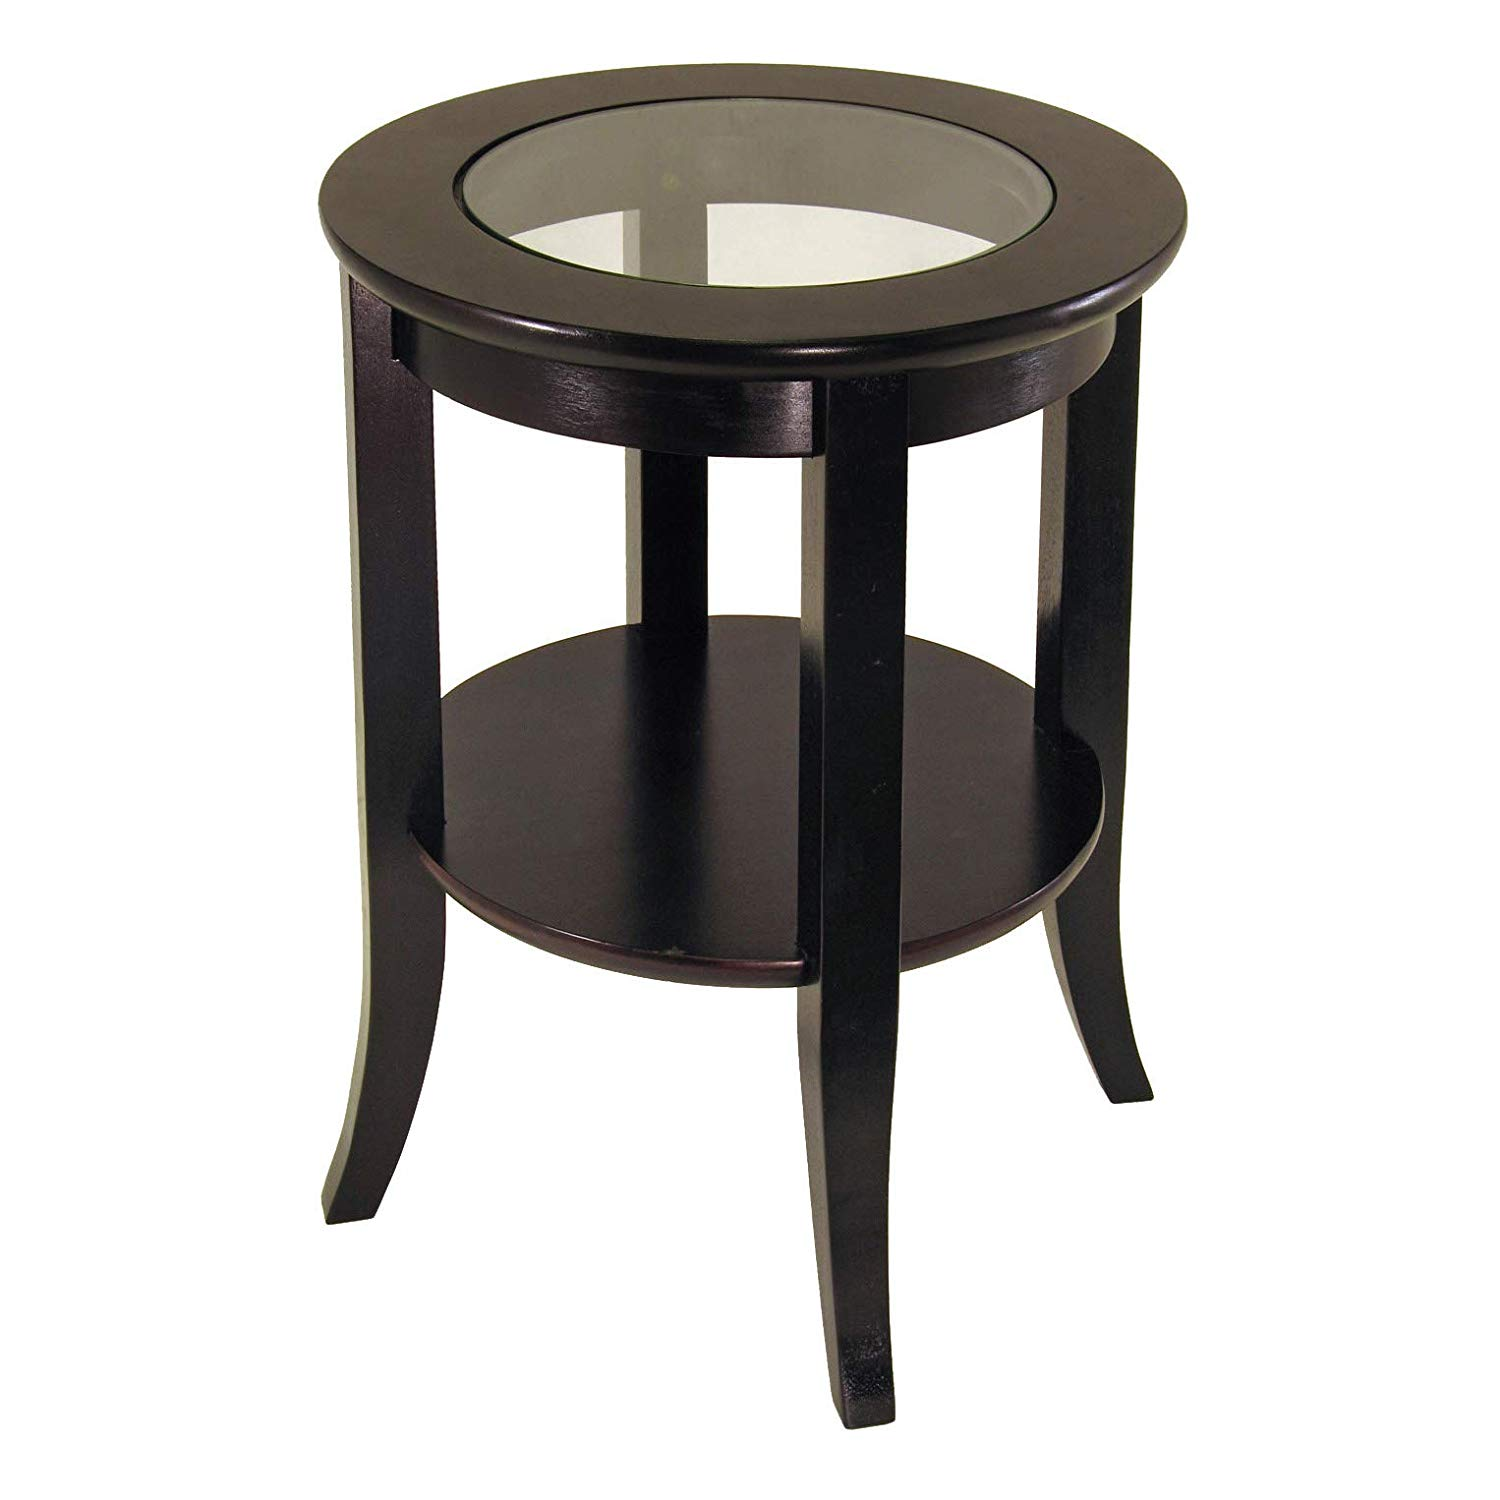 winsome wood genoa occasional table espresso narrow end kitchen dining brass leather furniture decorating ideas lamp floor weylandts sofa bedroom metal rolling coffee rack loft